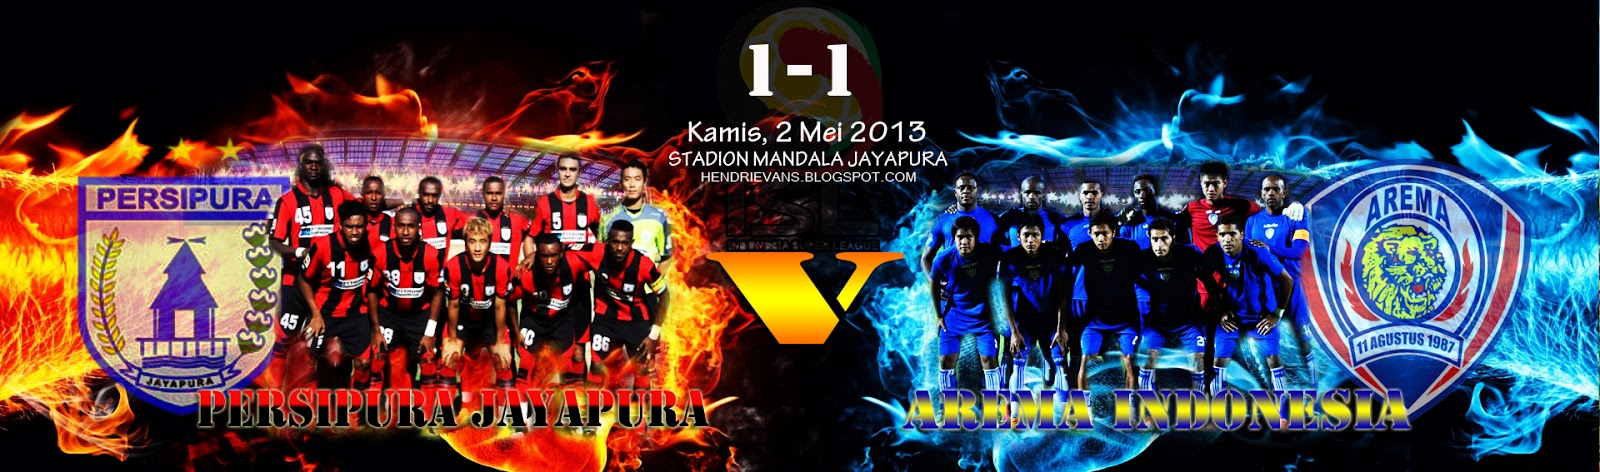 Indonesia Super League, Kamis, 2 mei 2013 PERSIPURA VS AREMA INDONESIA